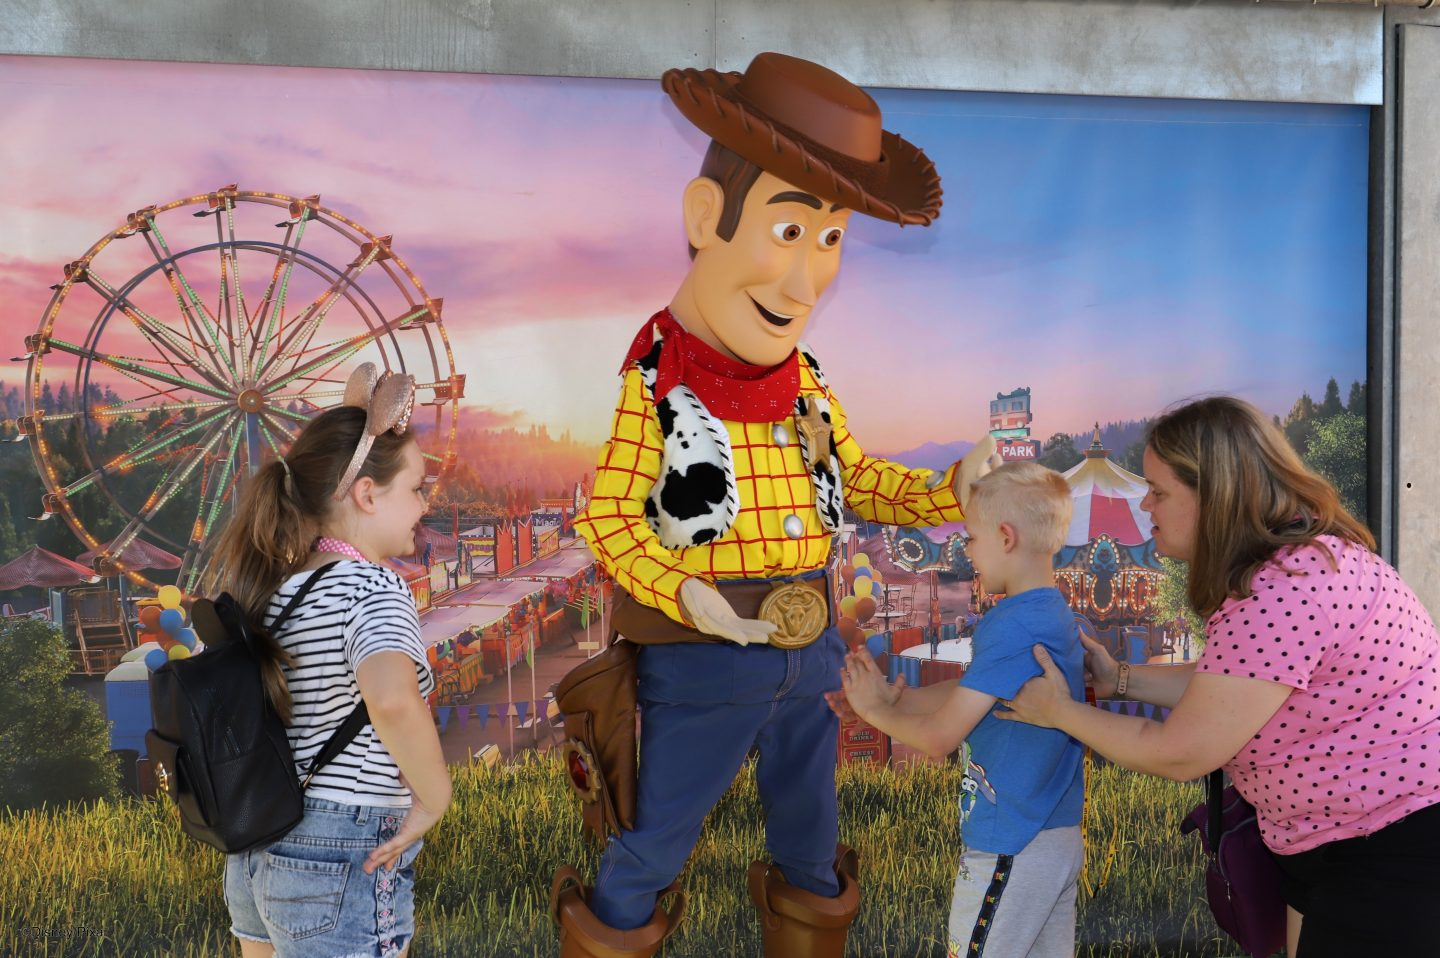 Meet & Greet with Woody